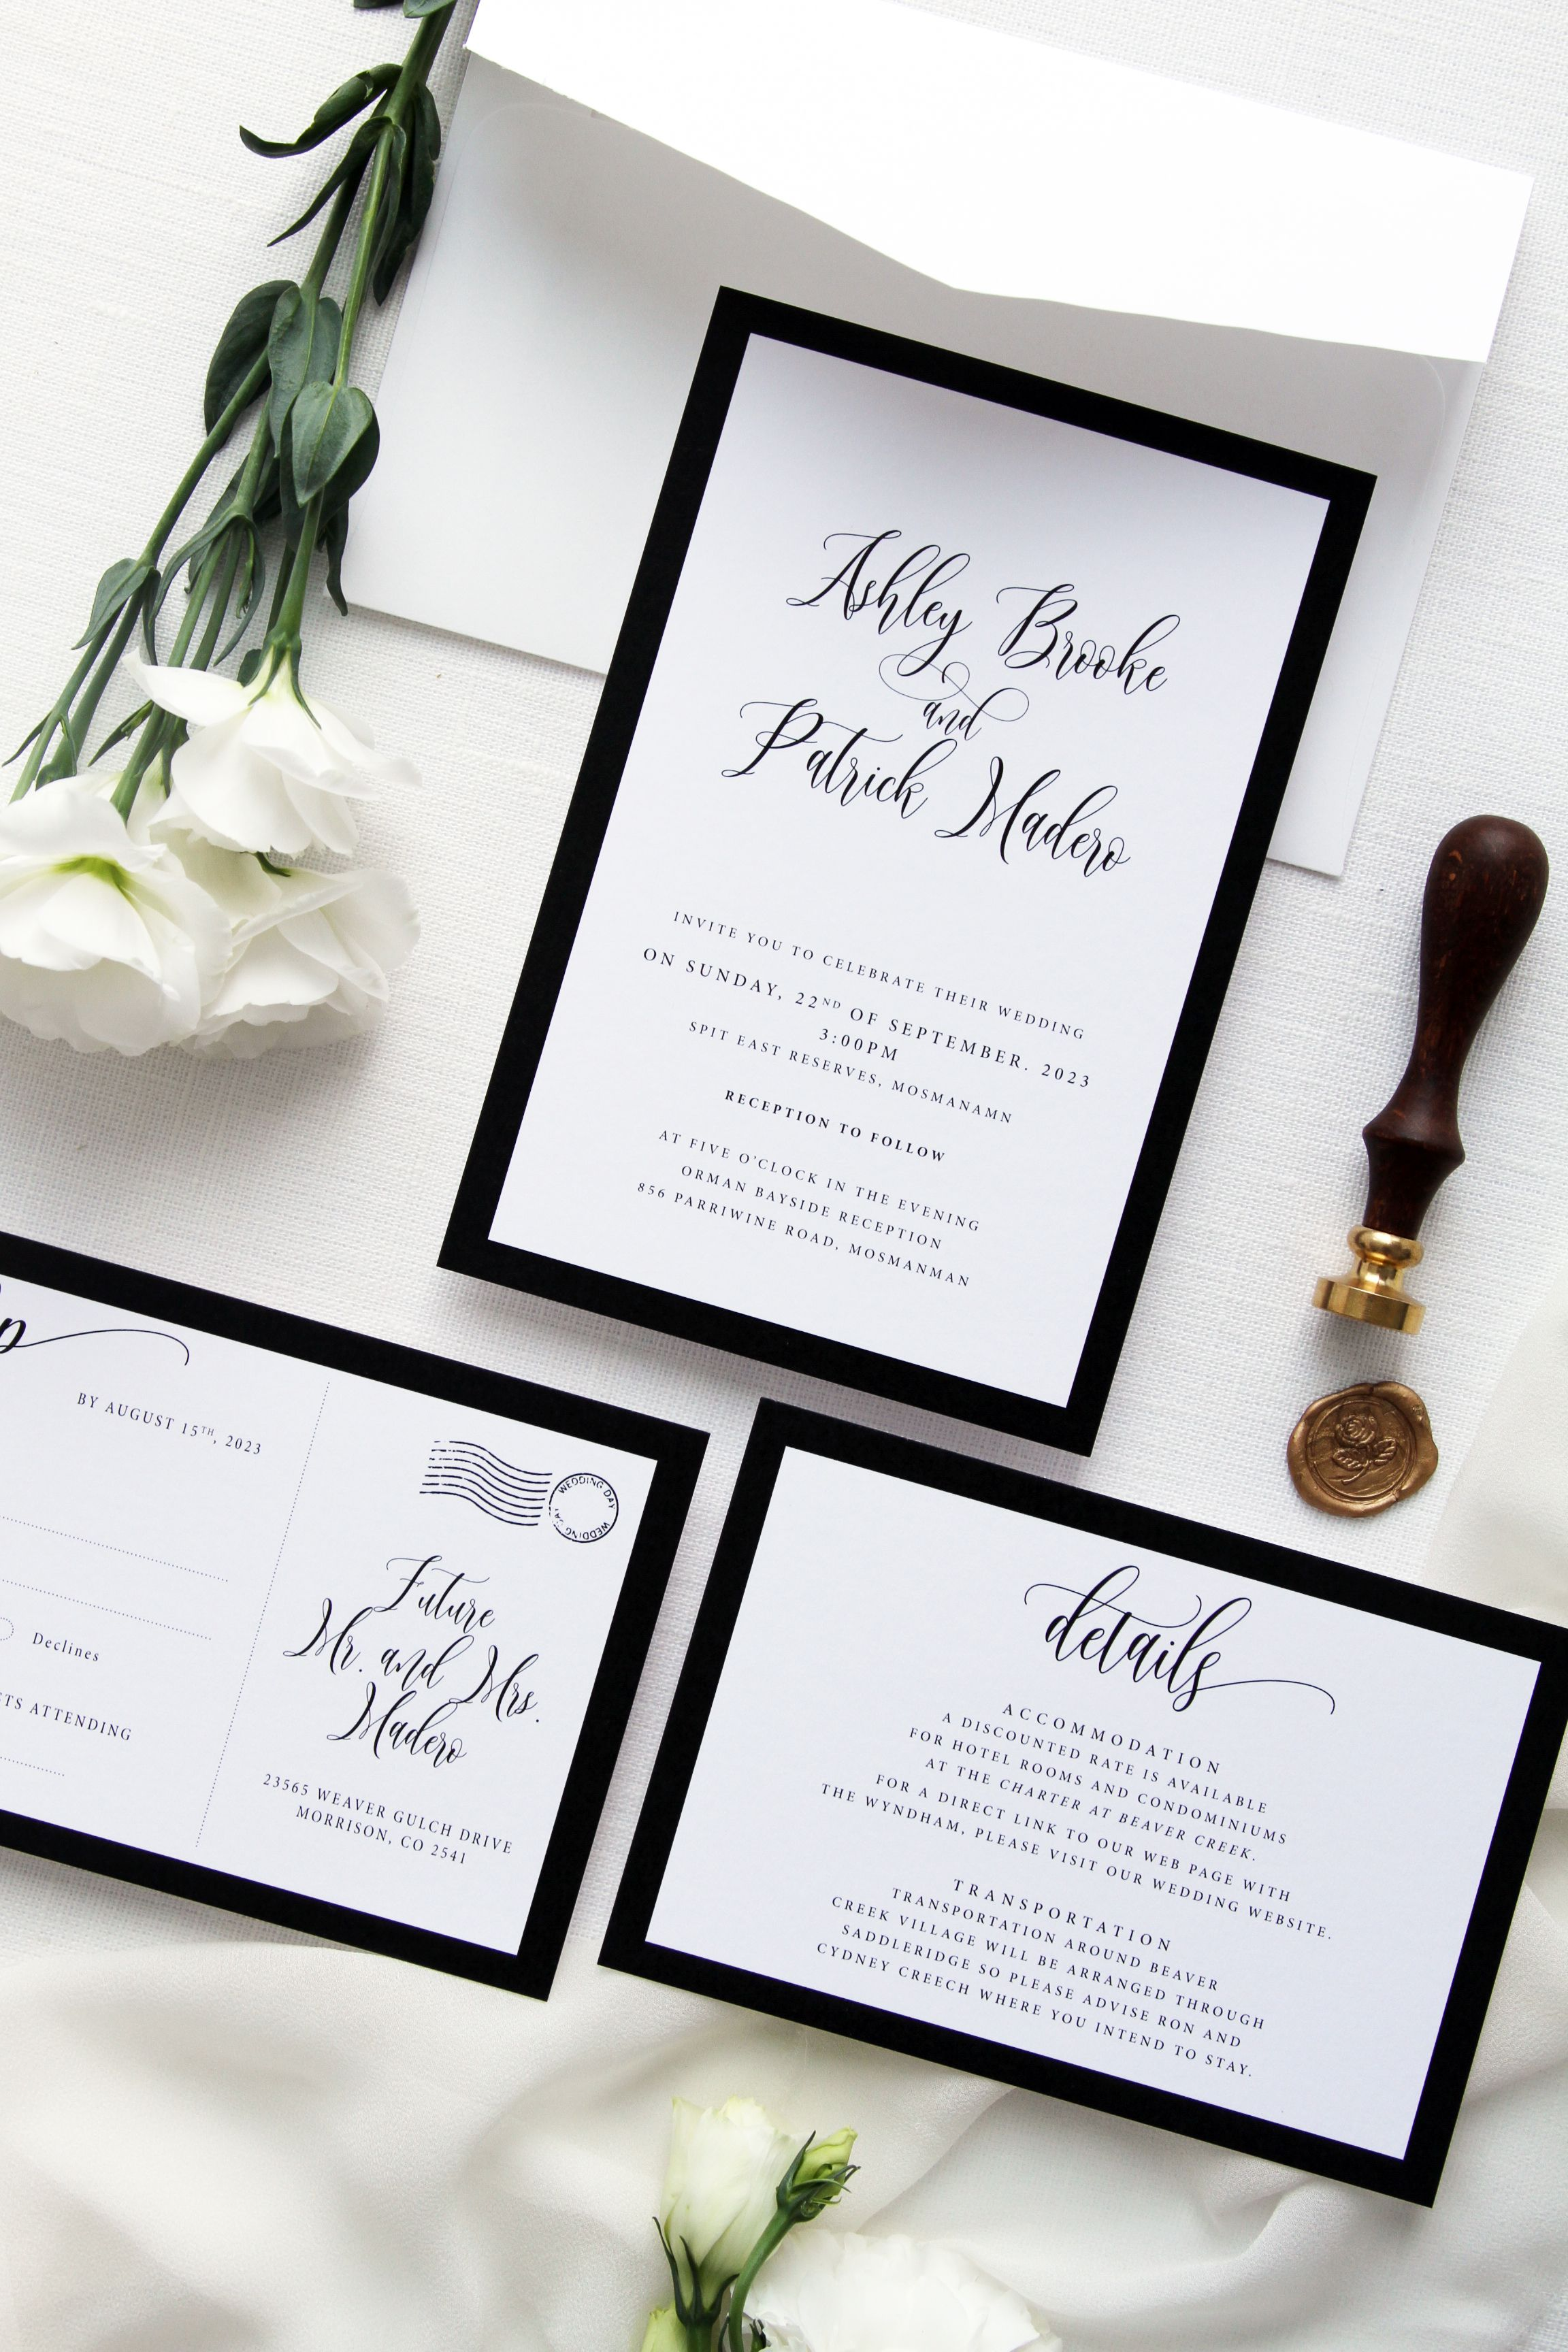 Weddinginvitation Weddings Bride Weddingstationery Weddinginvitations Weddingtrends Weddinginspo Weddingstyle